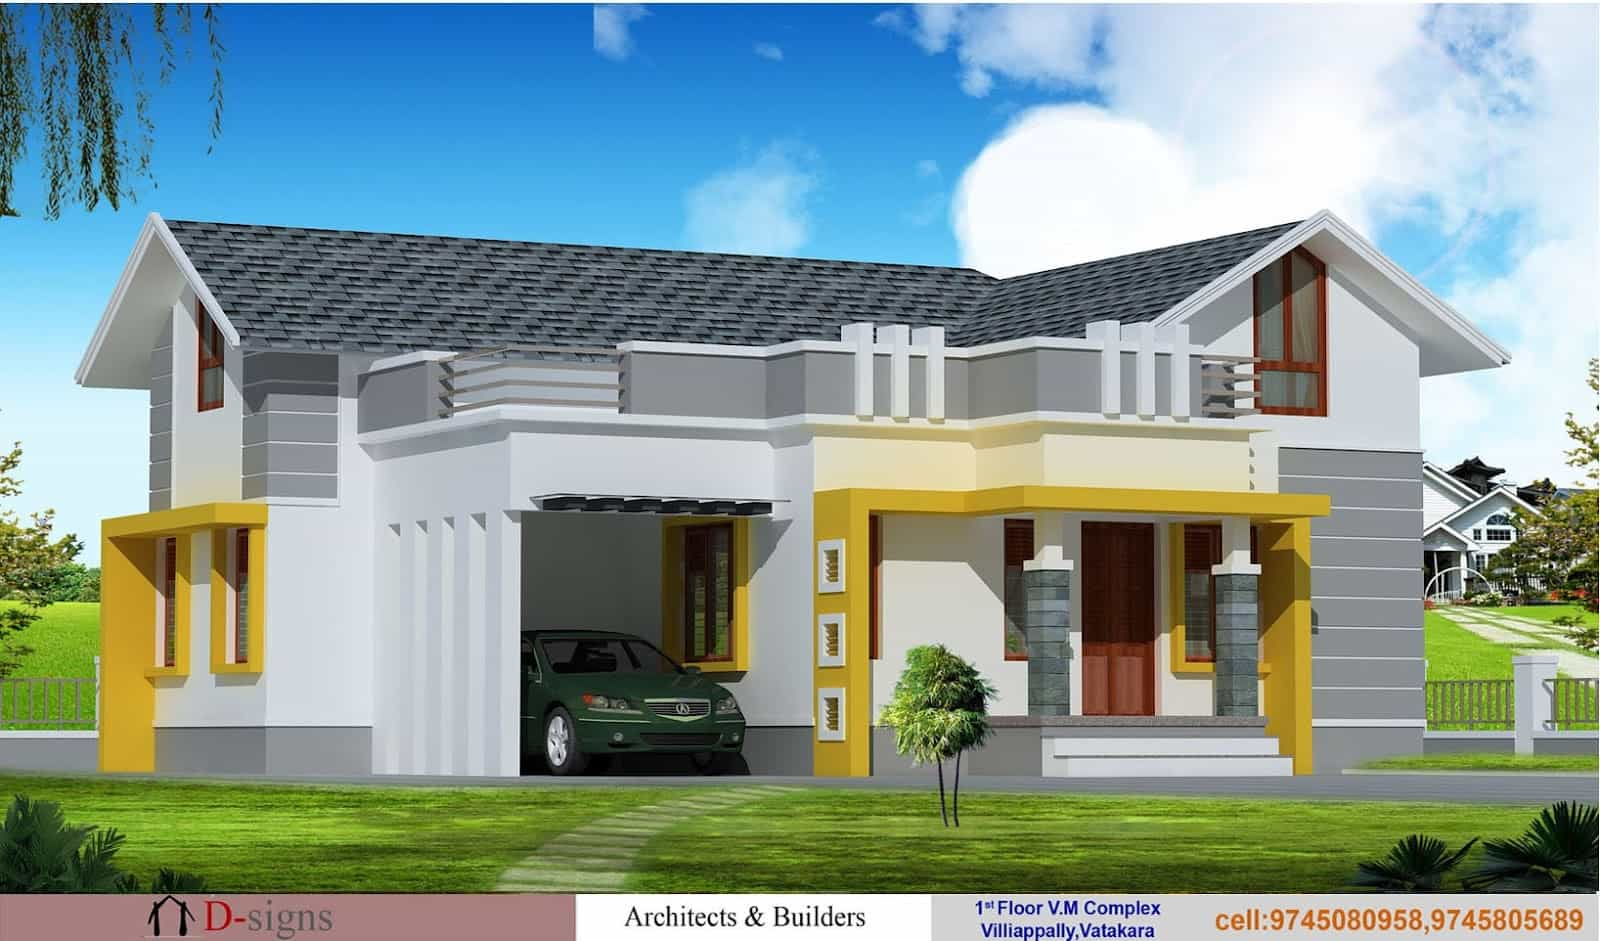 House Design One Floor Single Floor Kerala House Elevation At 1200 Sq.ft